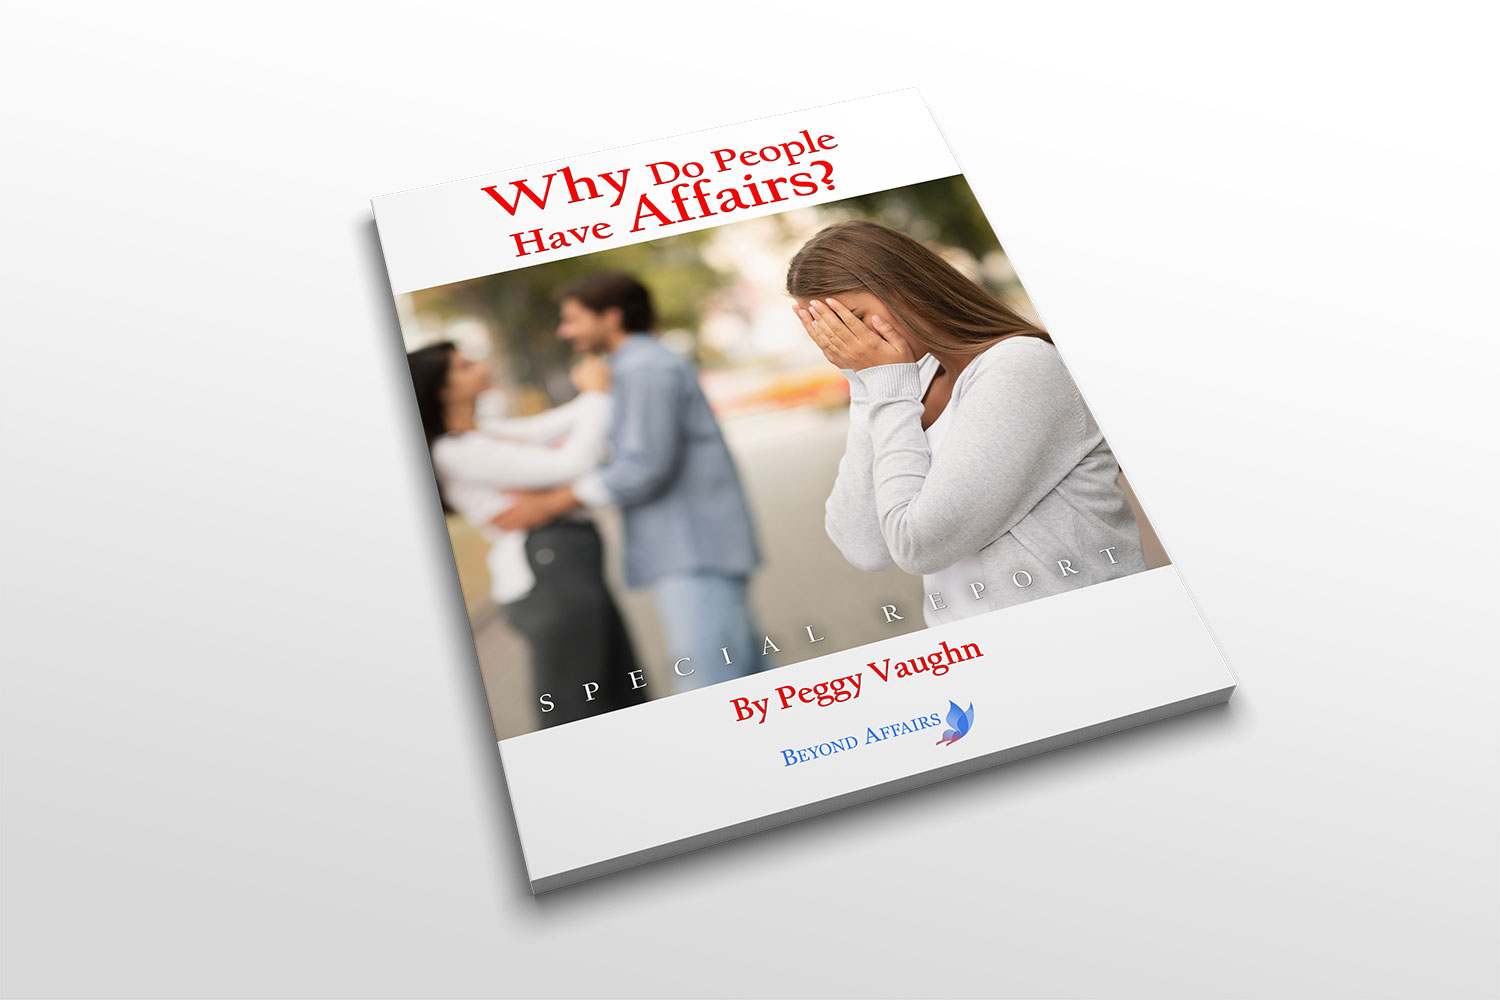 Beyond Affairs special report titled Why Do People Have Affairs